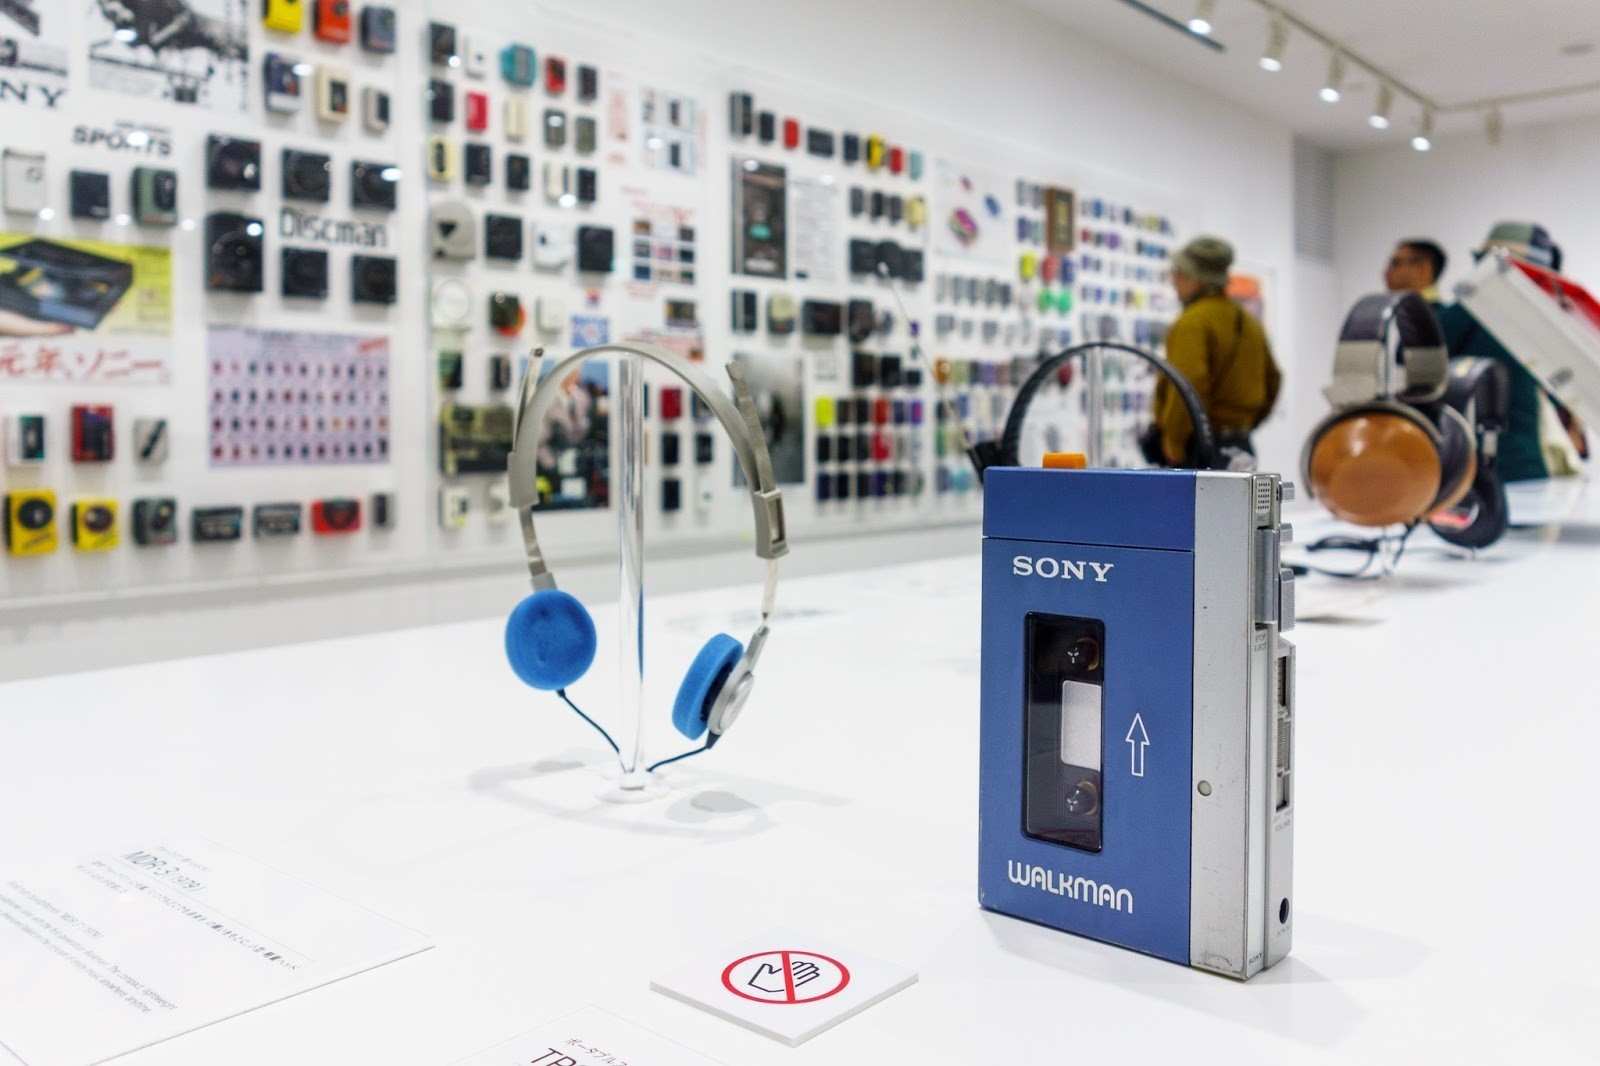 The original Sony Walkman is now a museum exhibit, but it revolutionized the way we listen to music.